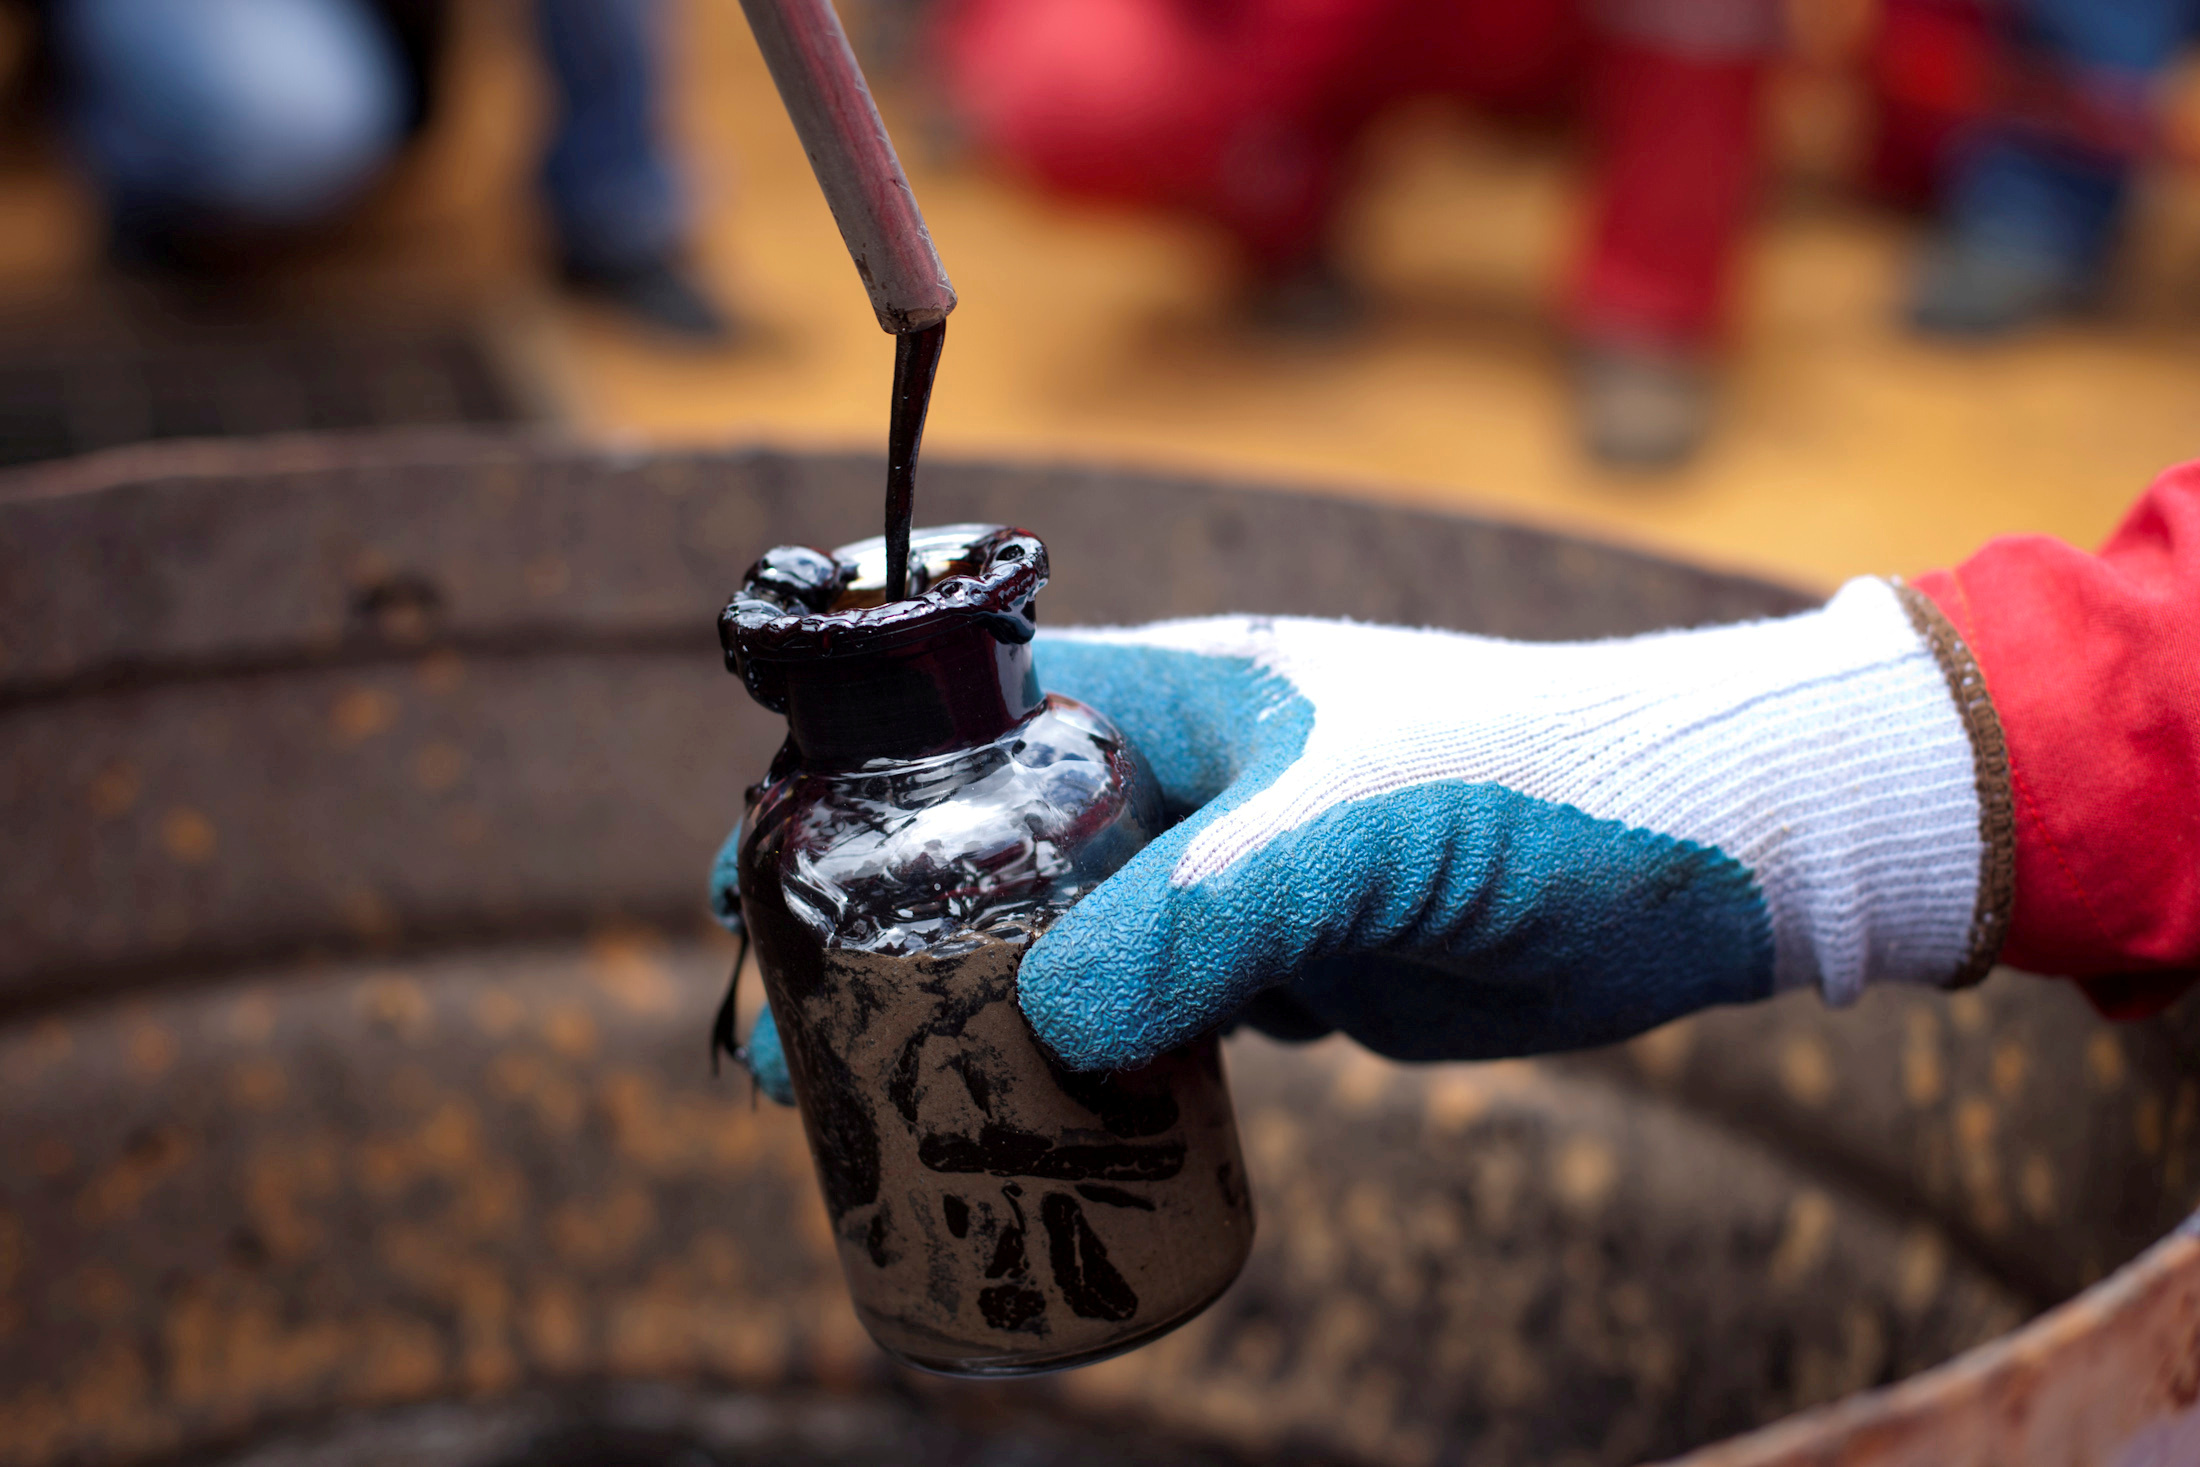 A worker collects a crude oil sample at an oil well operated by Venezuela